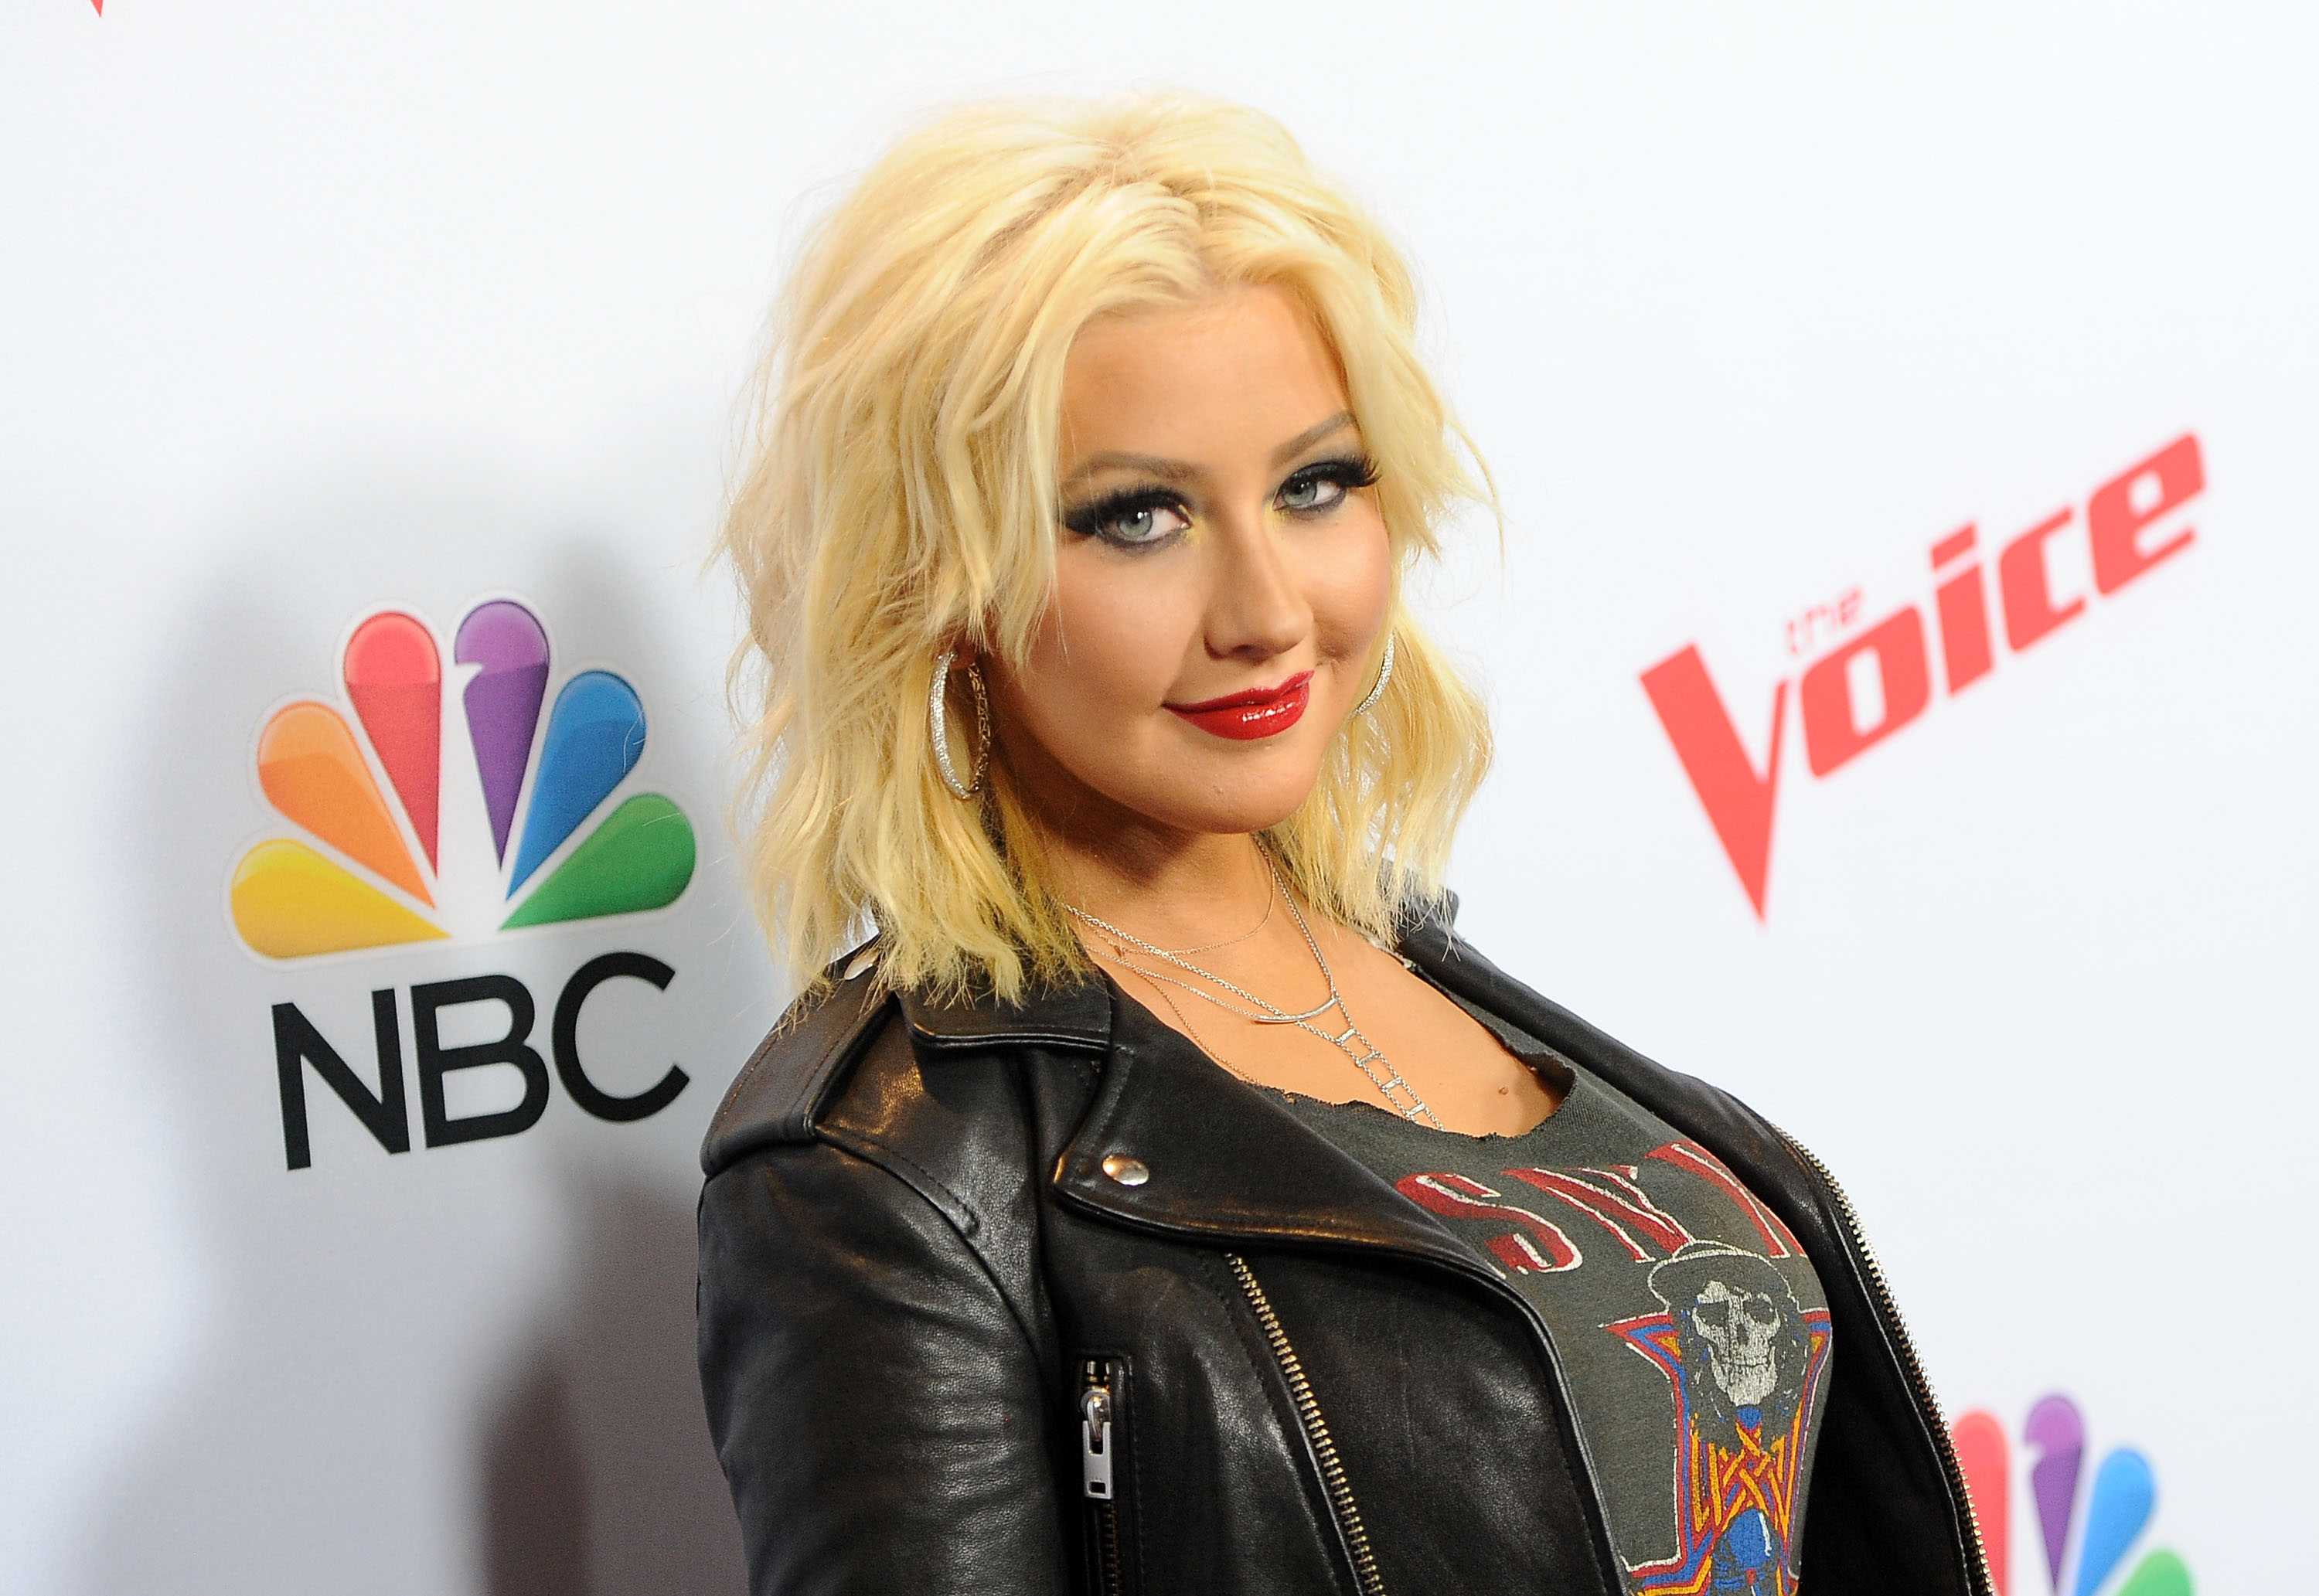 Christina Aguilera Just Dyed Her Hair Very, VeryRed foto